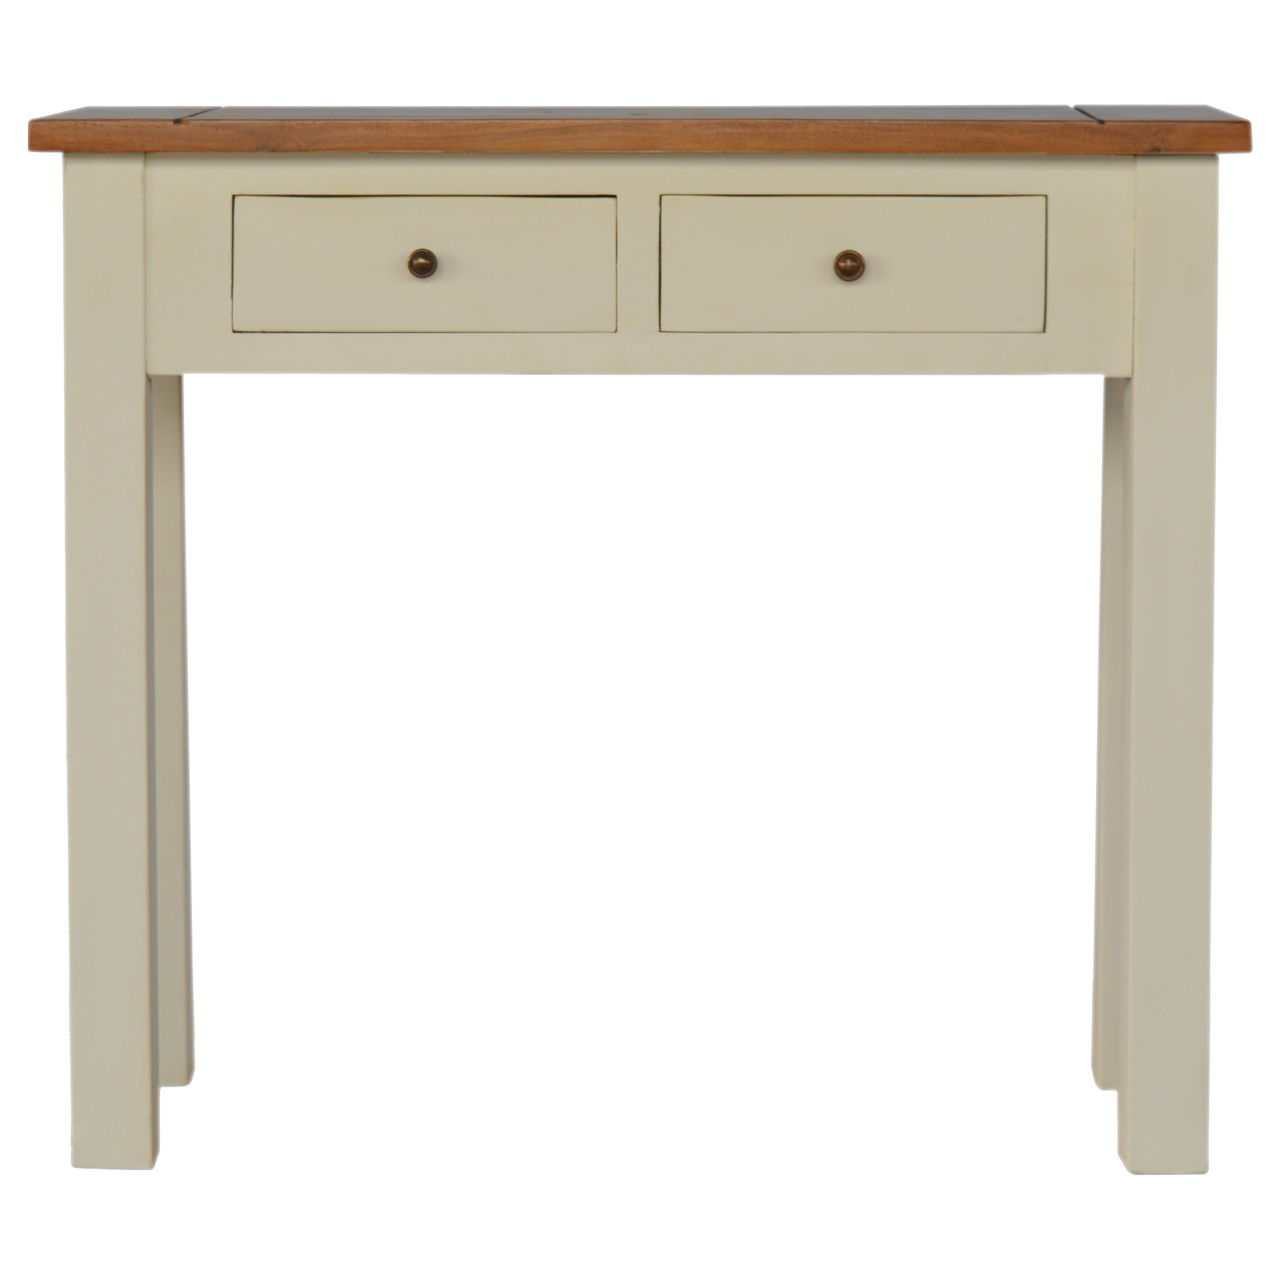 Shabby Chic Dropshippers Wholesale French Style Painted Furniture Artisan Furniture